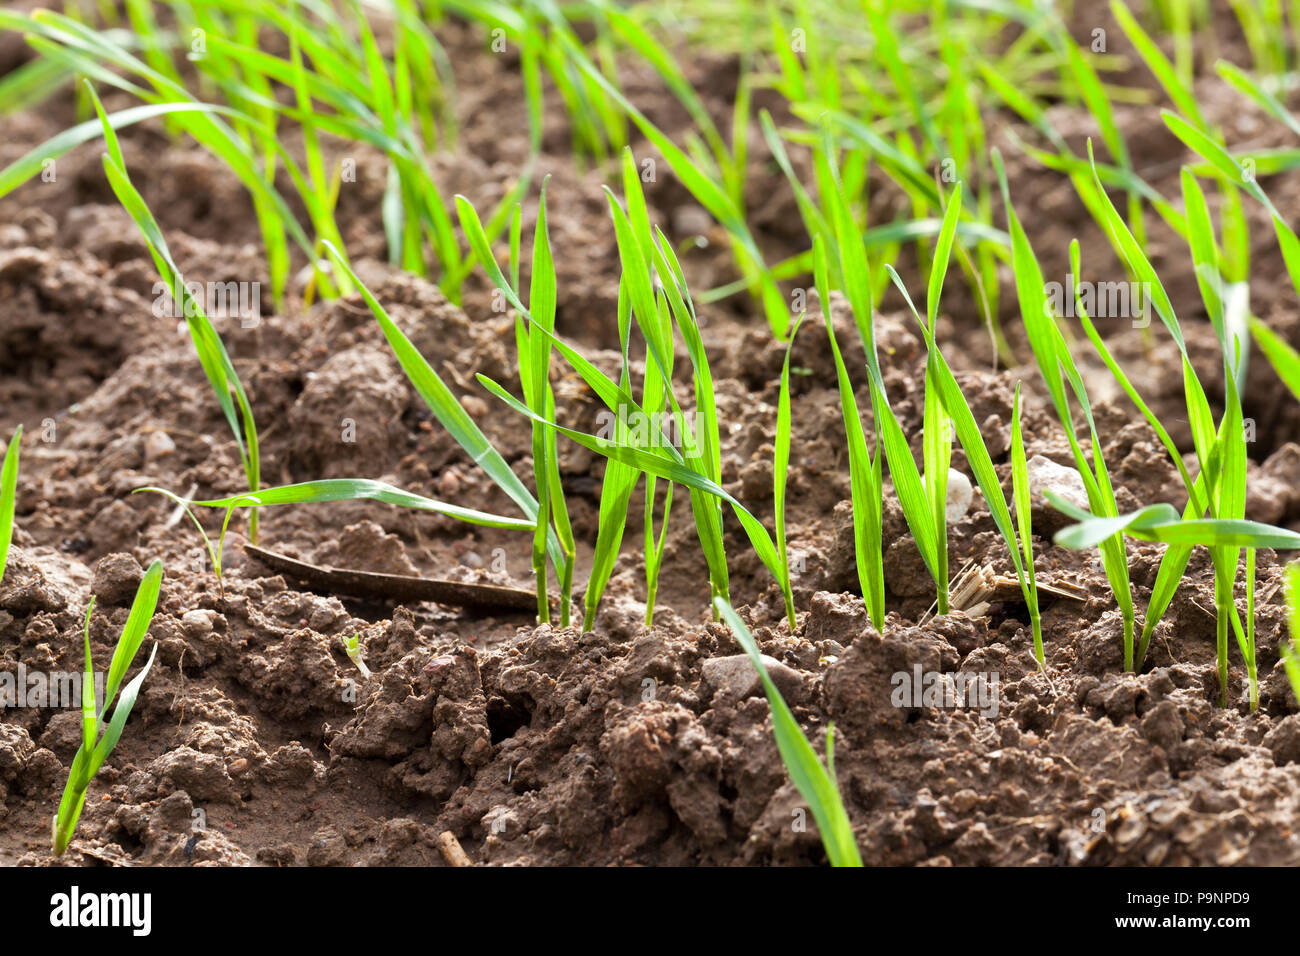 agriculture for the production of wheat, photo close-up from the agricultural field, where the stems of a new crop sprouted - Stock Image